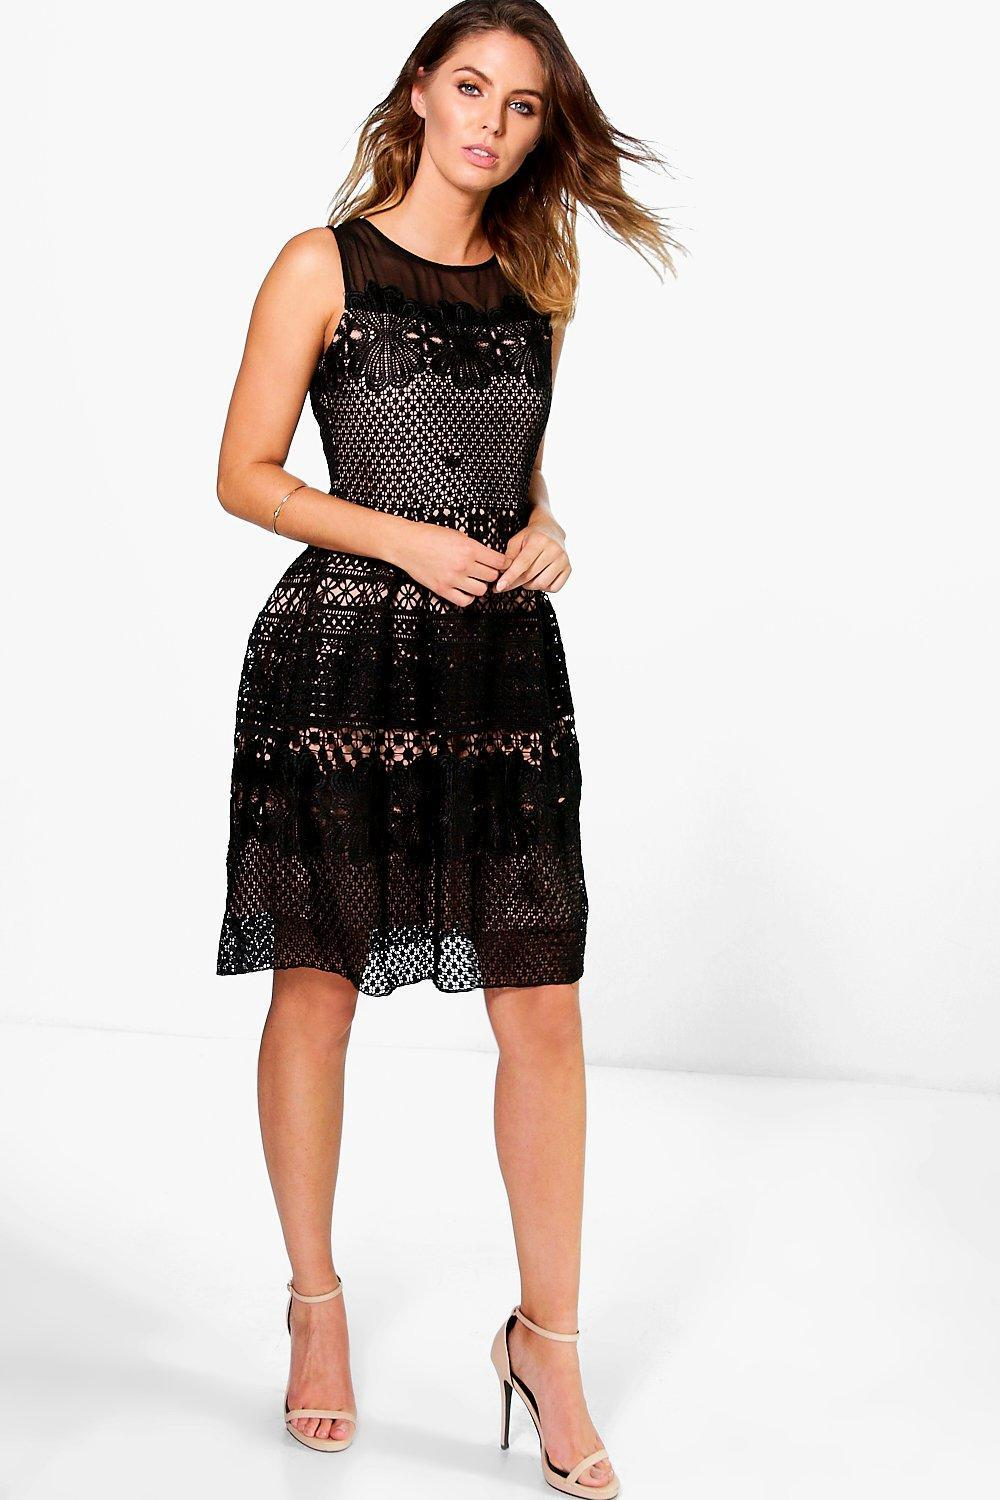 Ashlee Crochet Underlay Dress Black - sleeve style: sleeveless; secondary colour: ivory/cream; predominant colour: black; occasions: evening; length: on the knee; fit: fitted at waist & bust; style: fit & flare; fibres: polyester/polyamide - 100%; neckline: crew; sleeve length: sleeveless; texture group: knits/crochet; pattern type: fabric; pattern size: standard; pattern: patterned/print; season: s/s 2016; wardrobe: event